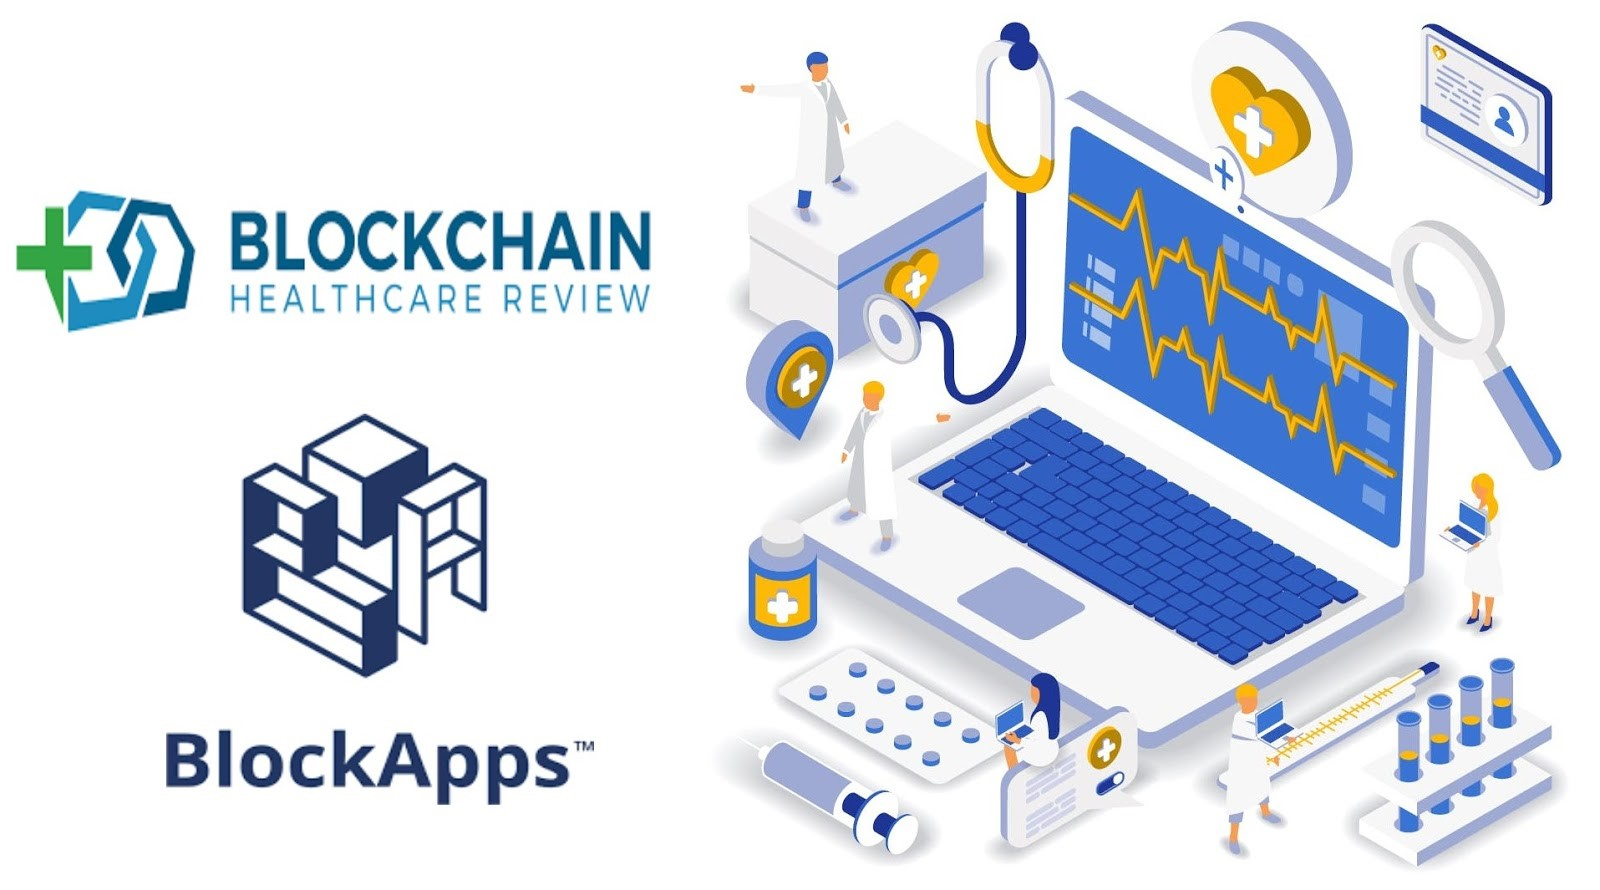 Blockchain Healthcare Review & BlockApps: Inaugural Partnership Paves Way for Blockchain Healthcare Solutions